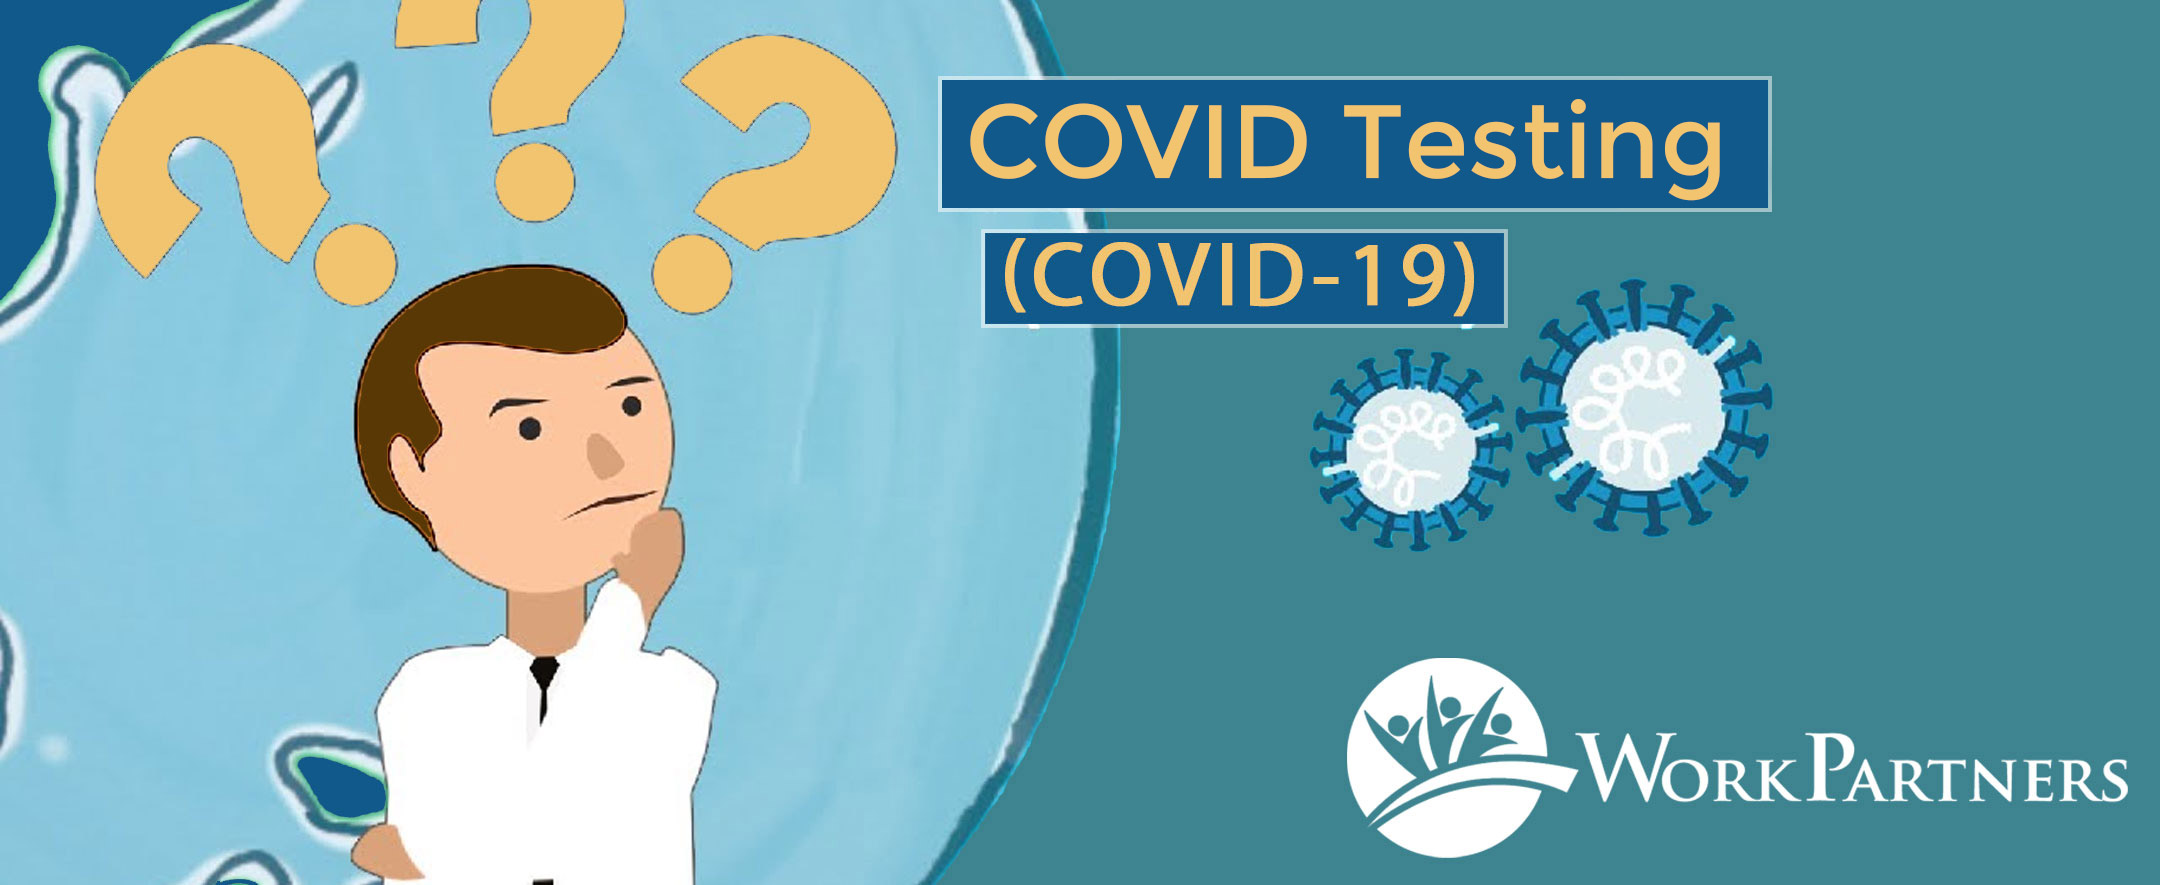 COVID Testing banner